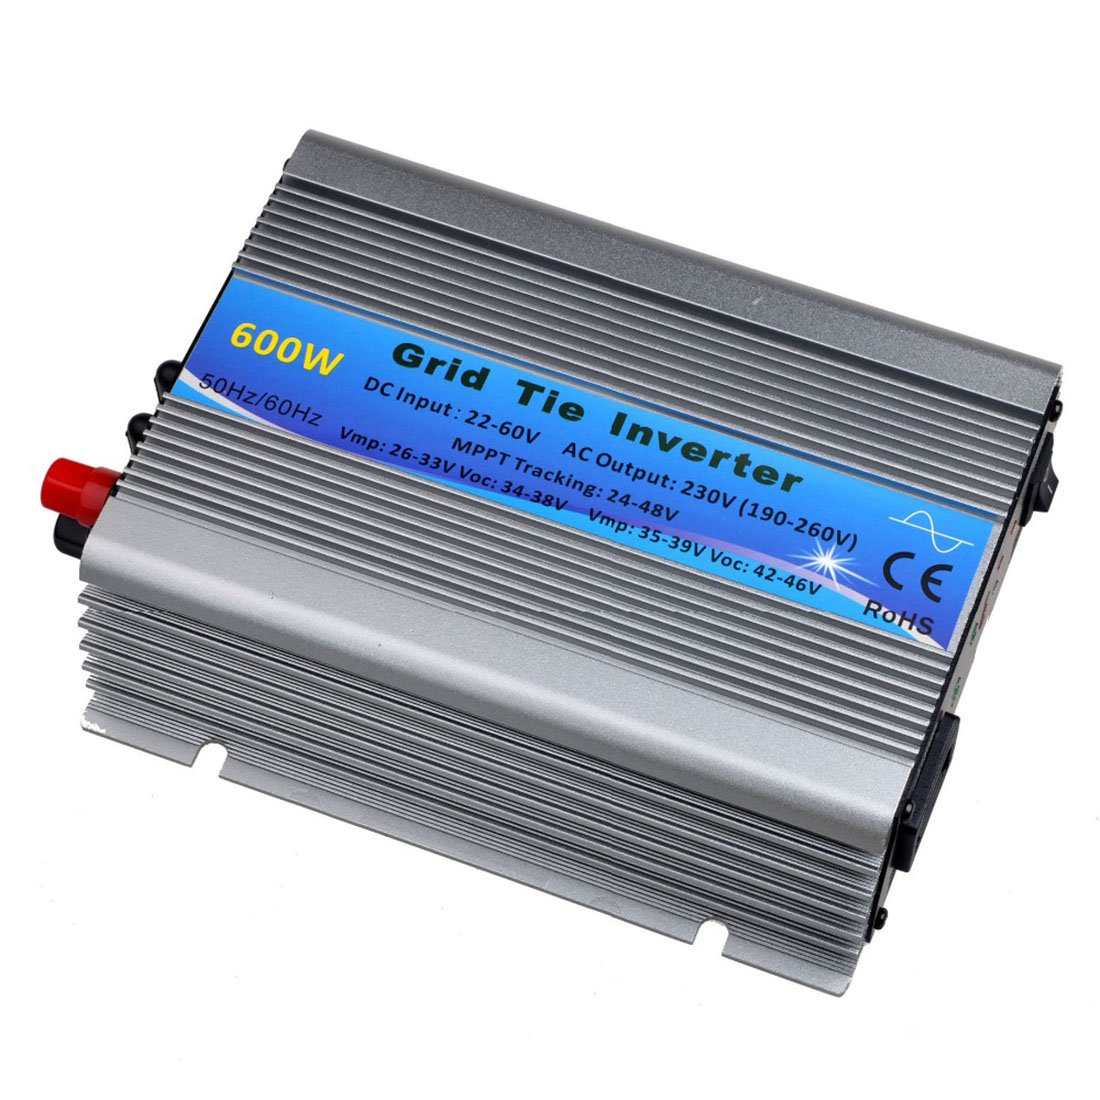 Y&H 600W 30V/36V Grid Tie Inverter Stackable MPPT Pure Sine Wave DC22-60V to AC90-140V Output by Y&H